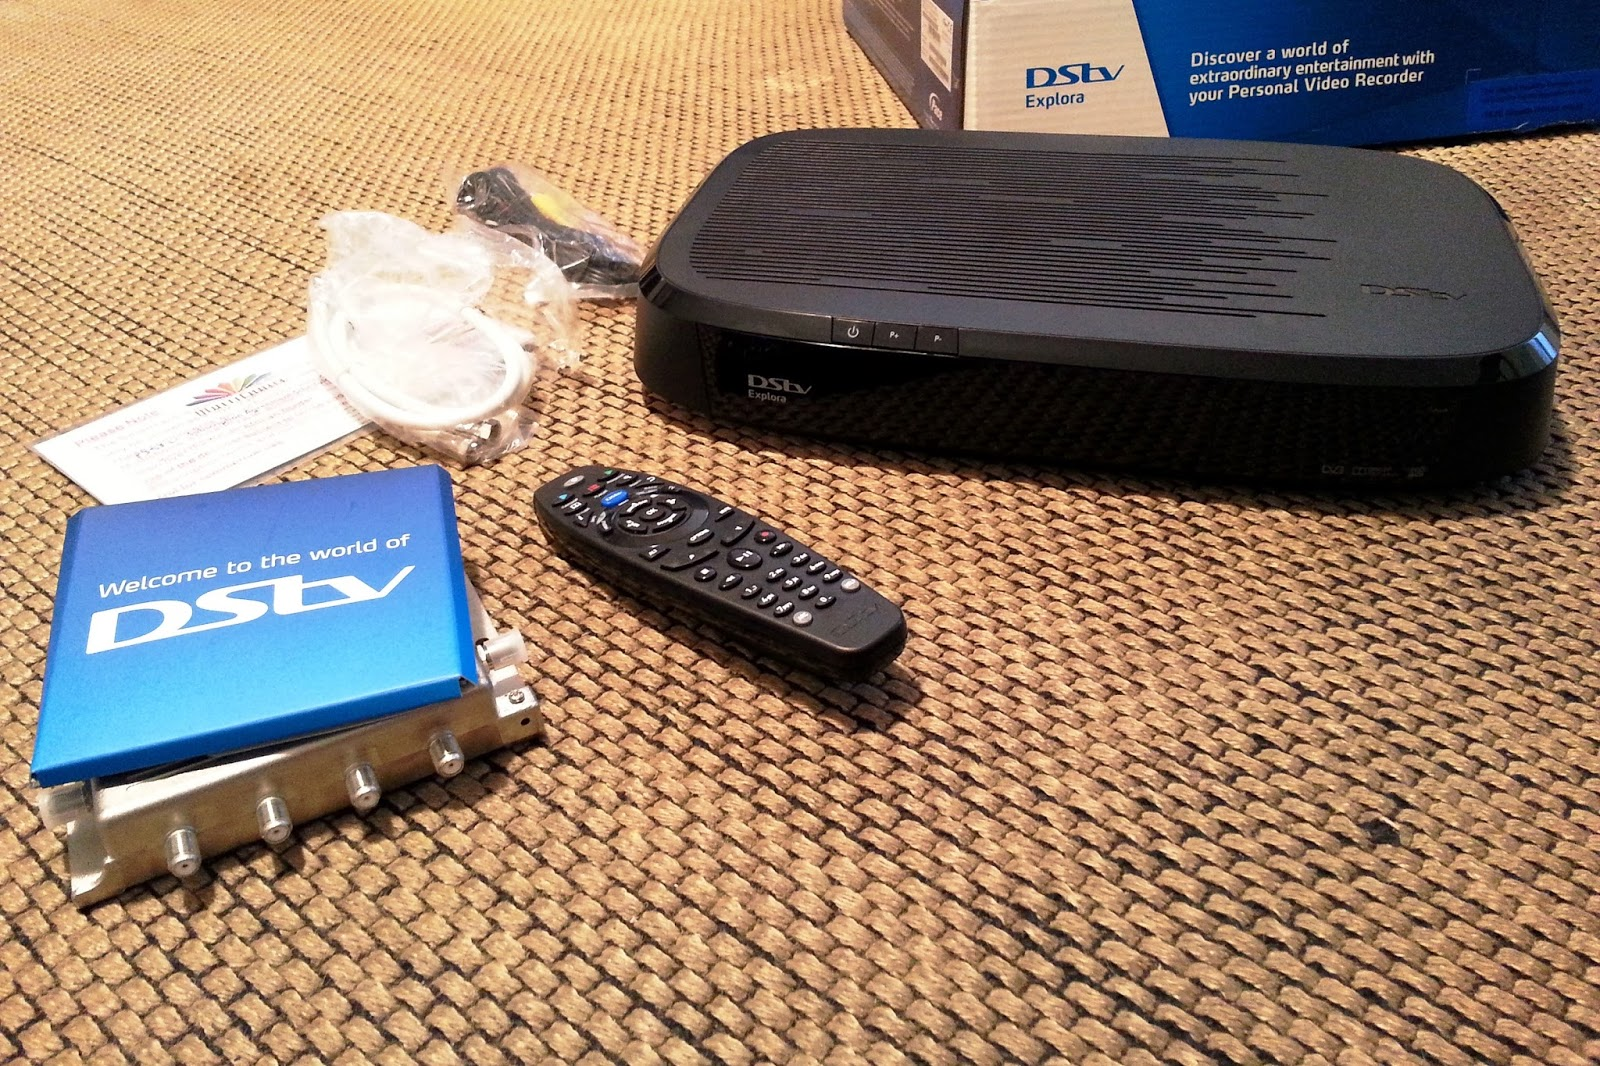 Dstv Hd Pvr Installation Diagram Turn Signal Wiring Chevy Truck Tv With Thinus Unboxing Explora Exactly How It